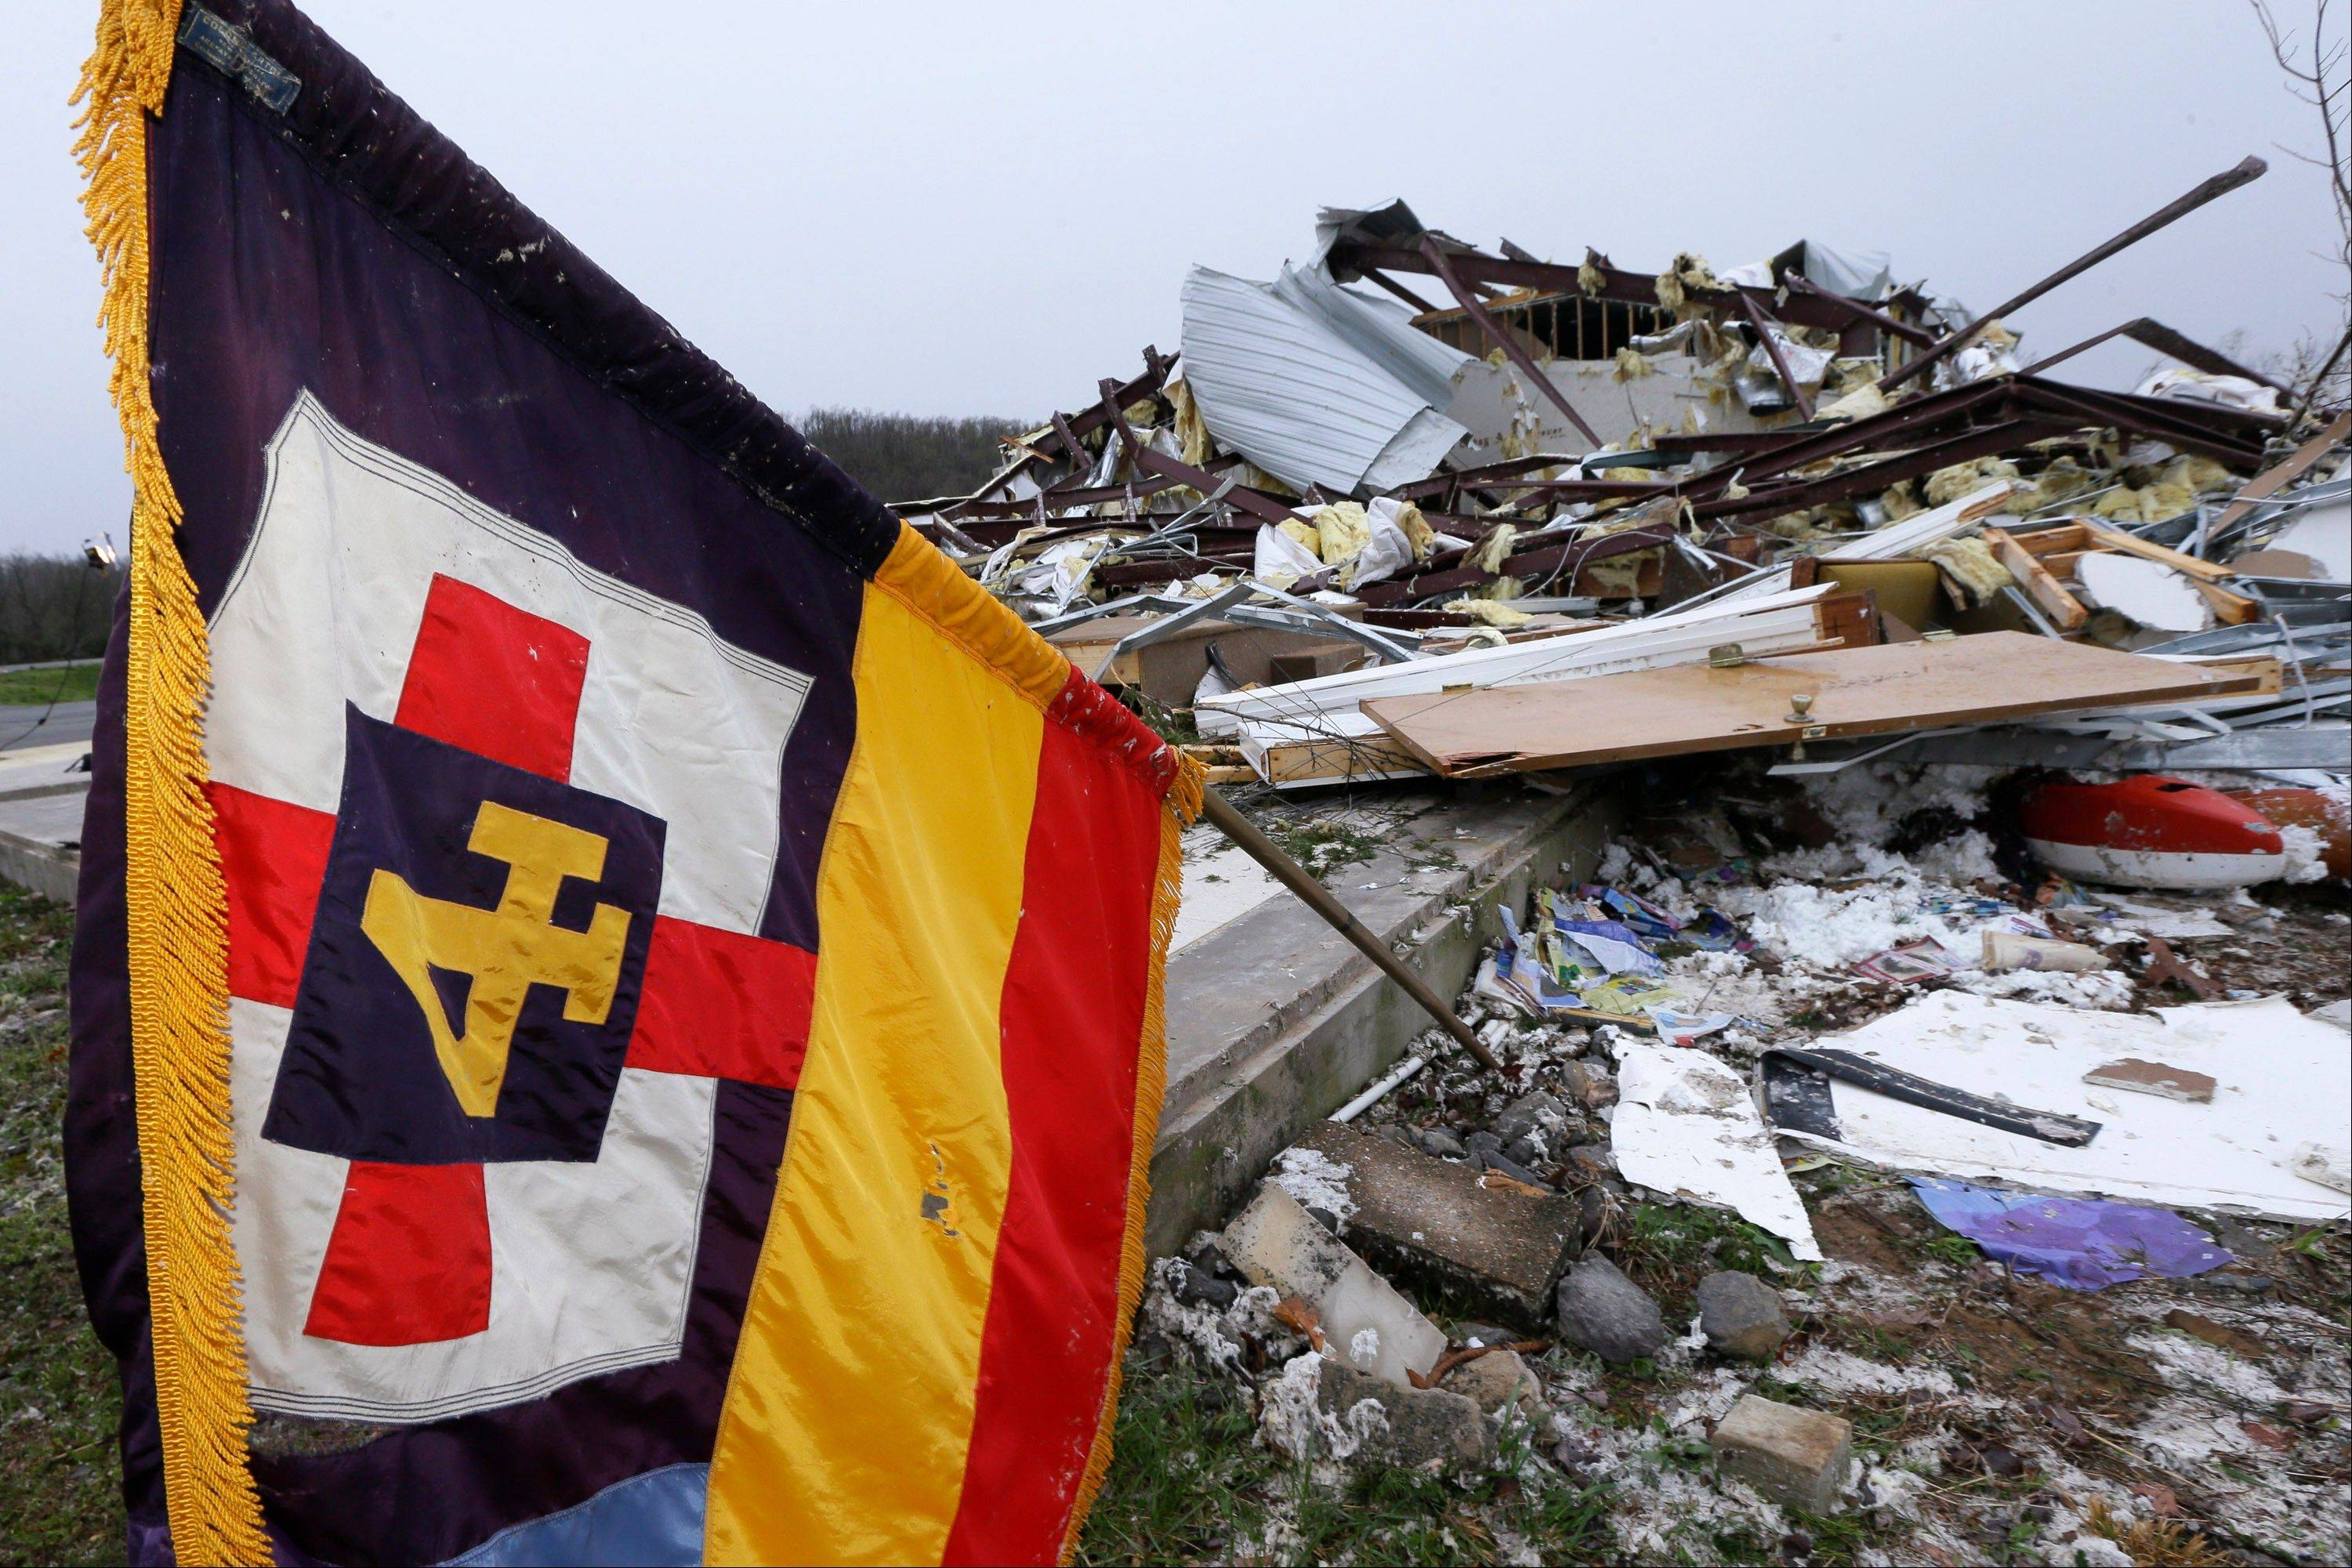 A flag flutters over what remains of the sanctuary of the Botkinburg Foursquare Church in Botkinburg, Ark., Thursday, April 11, 2013 after a severe storm struck the building late Wednesday. The National Weather Service is surveying areas Thursday to determine whether tornadoes or strong winds caused damage.